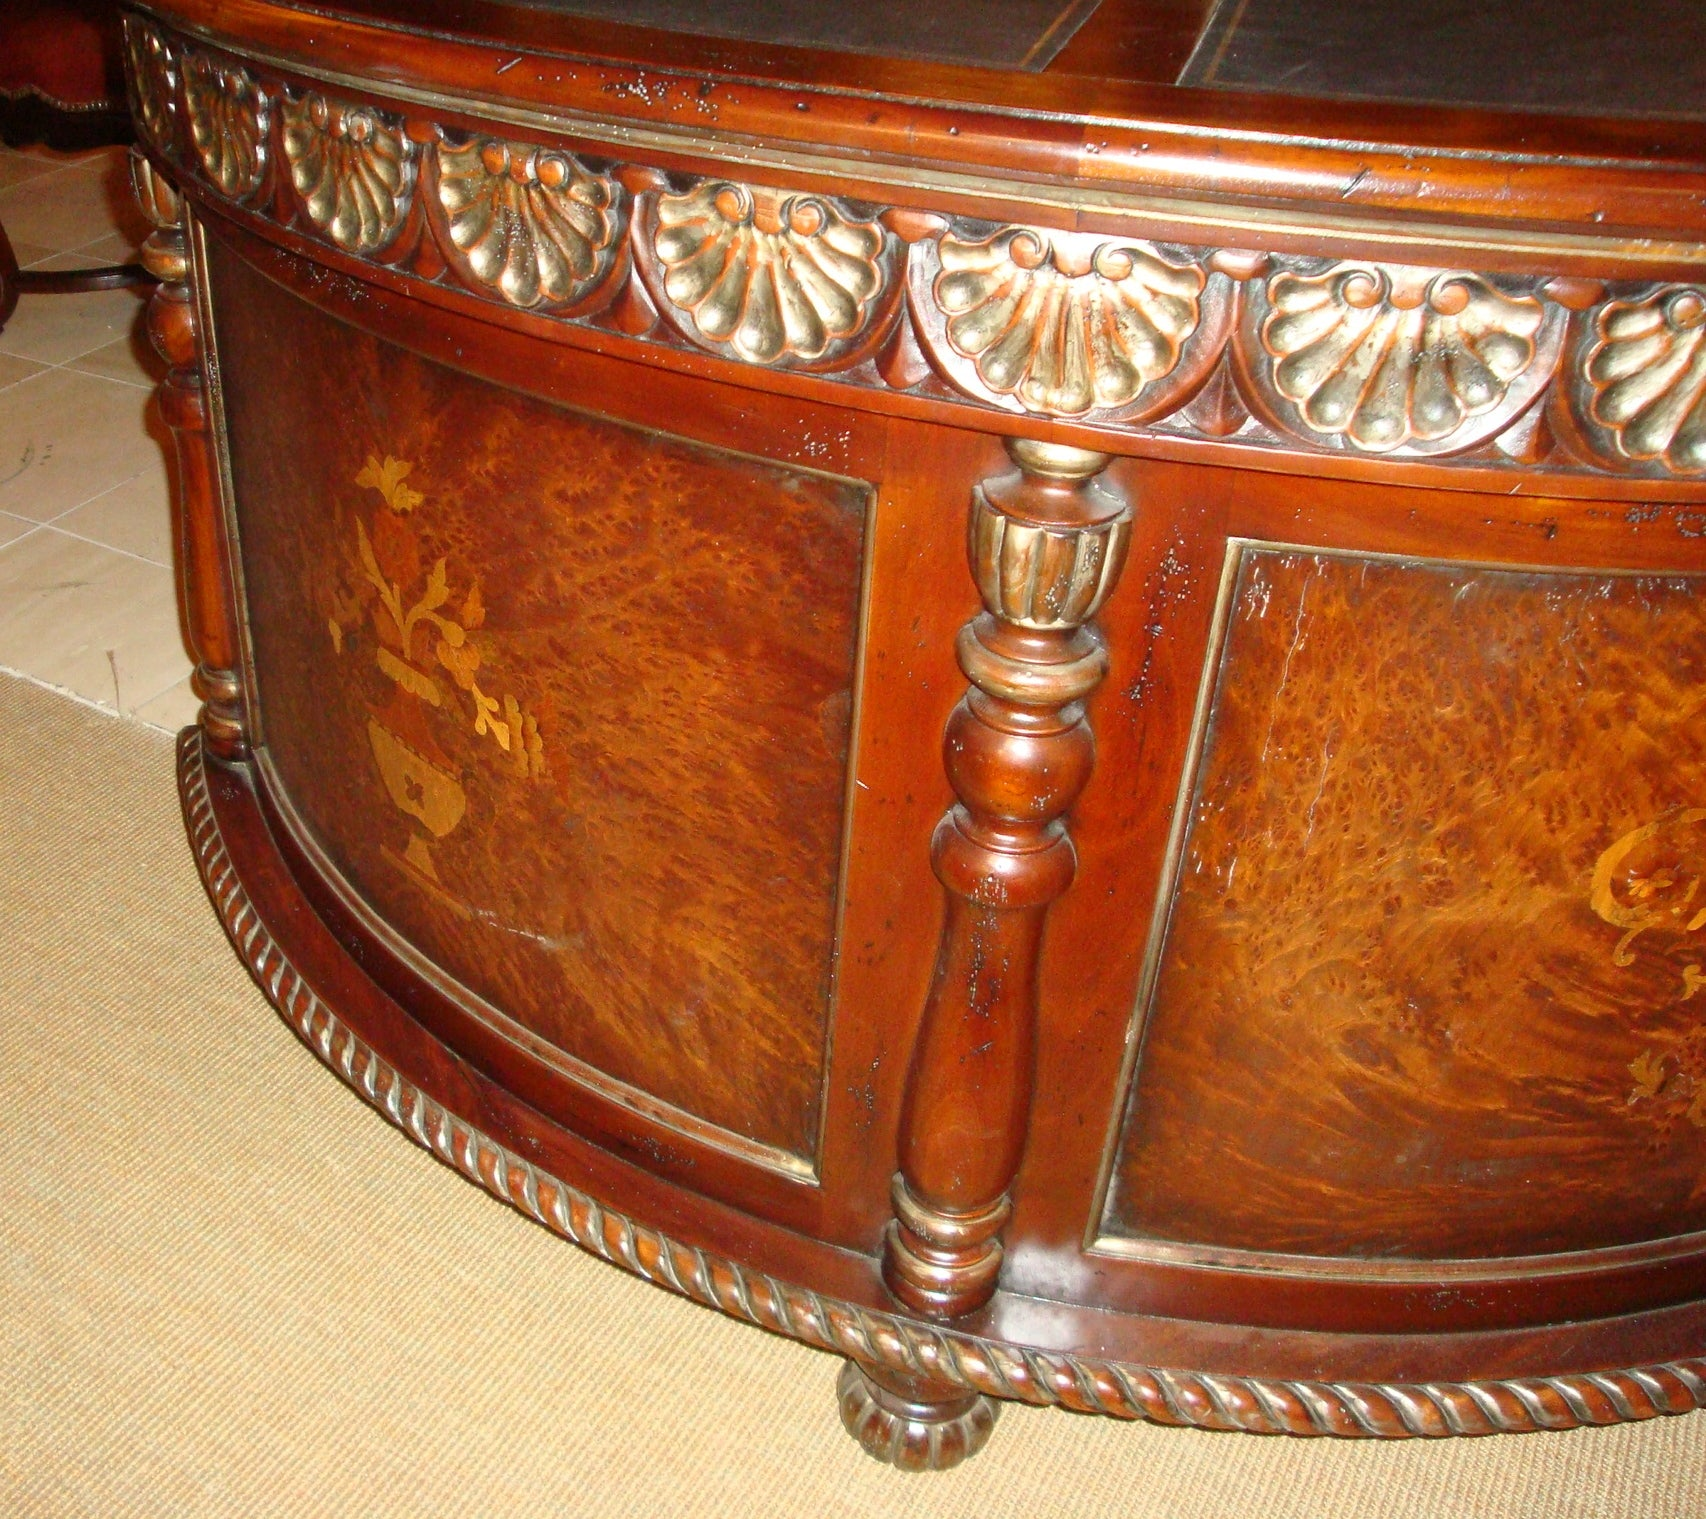 Demilune Inlay Mahogany Desk - Furniture on Main